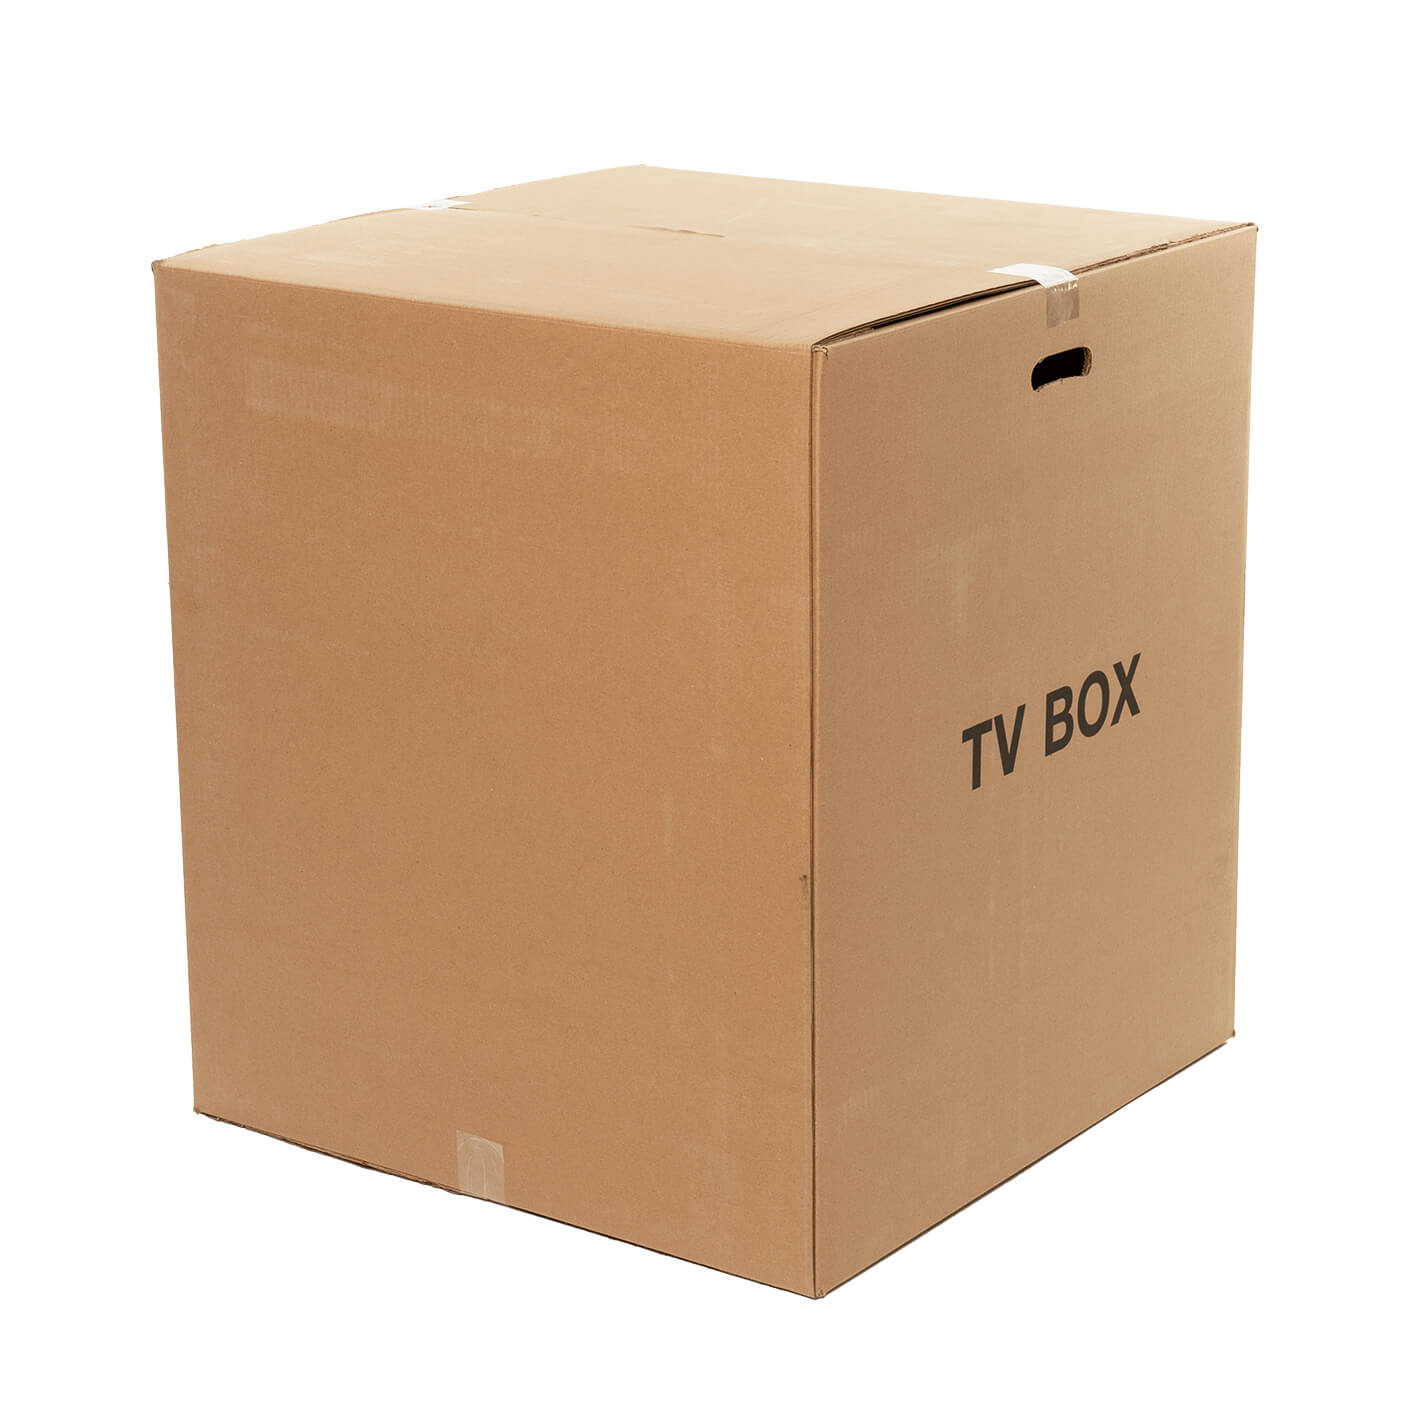 Extra Large Double Walled Box - 27″ x 24″ x 24″